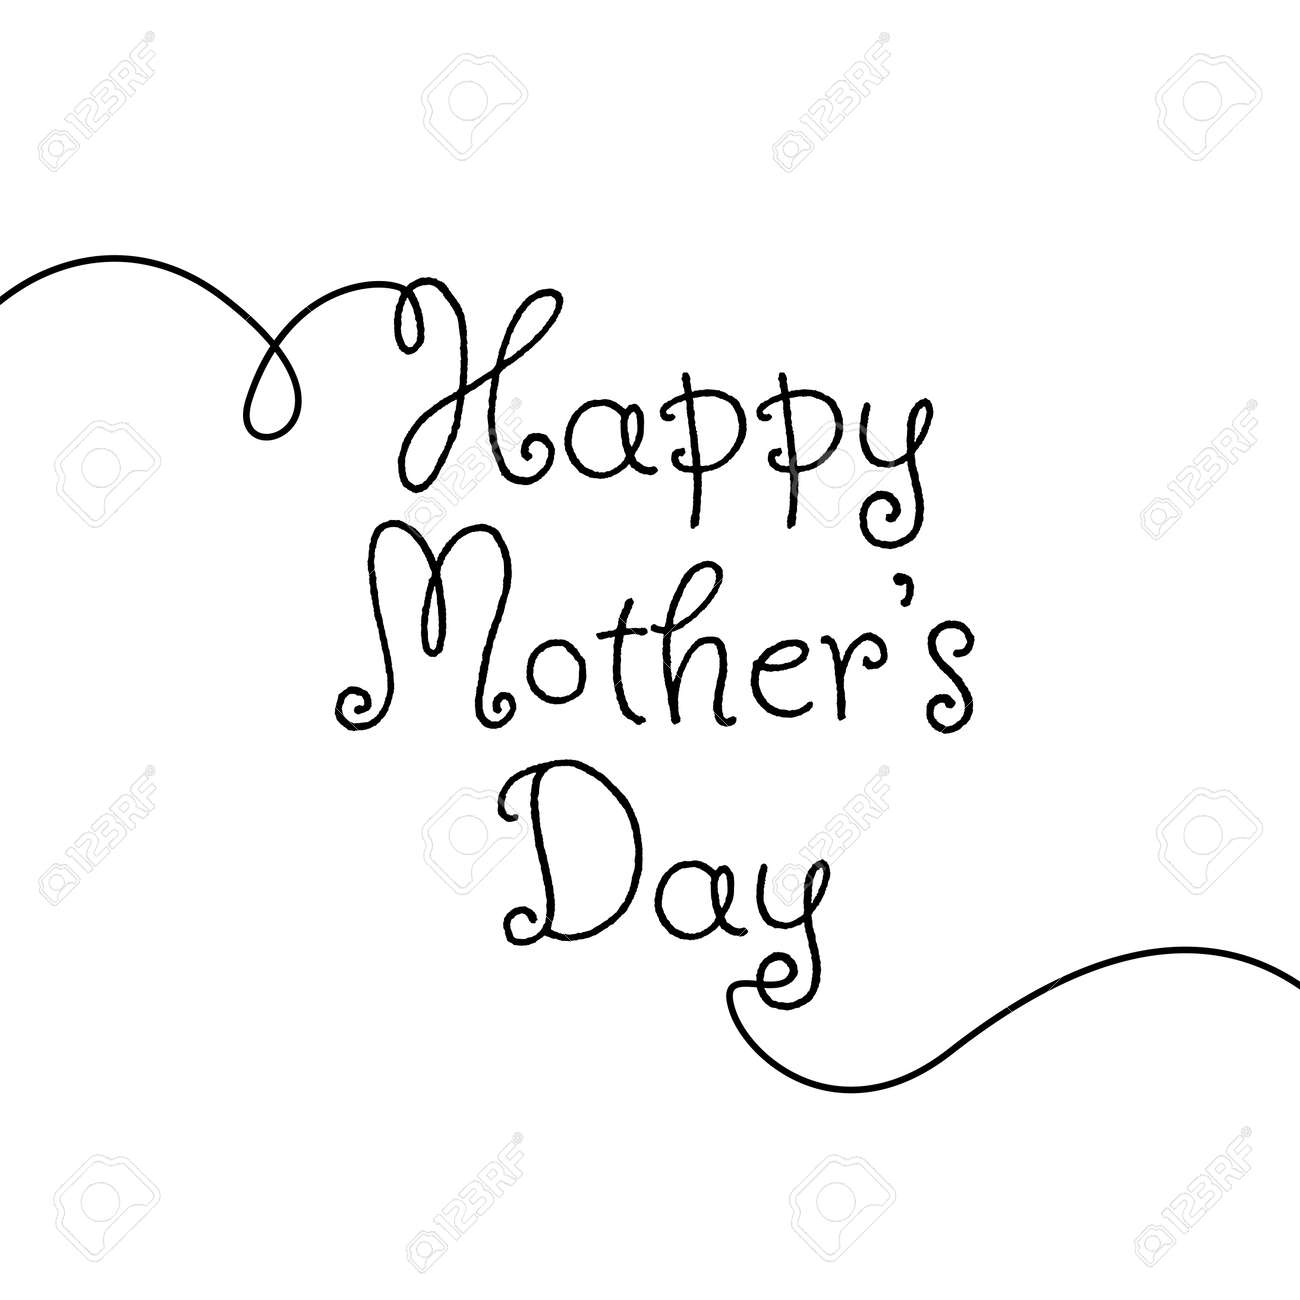 Happy Mother's Day. Vector illustration - 168543790